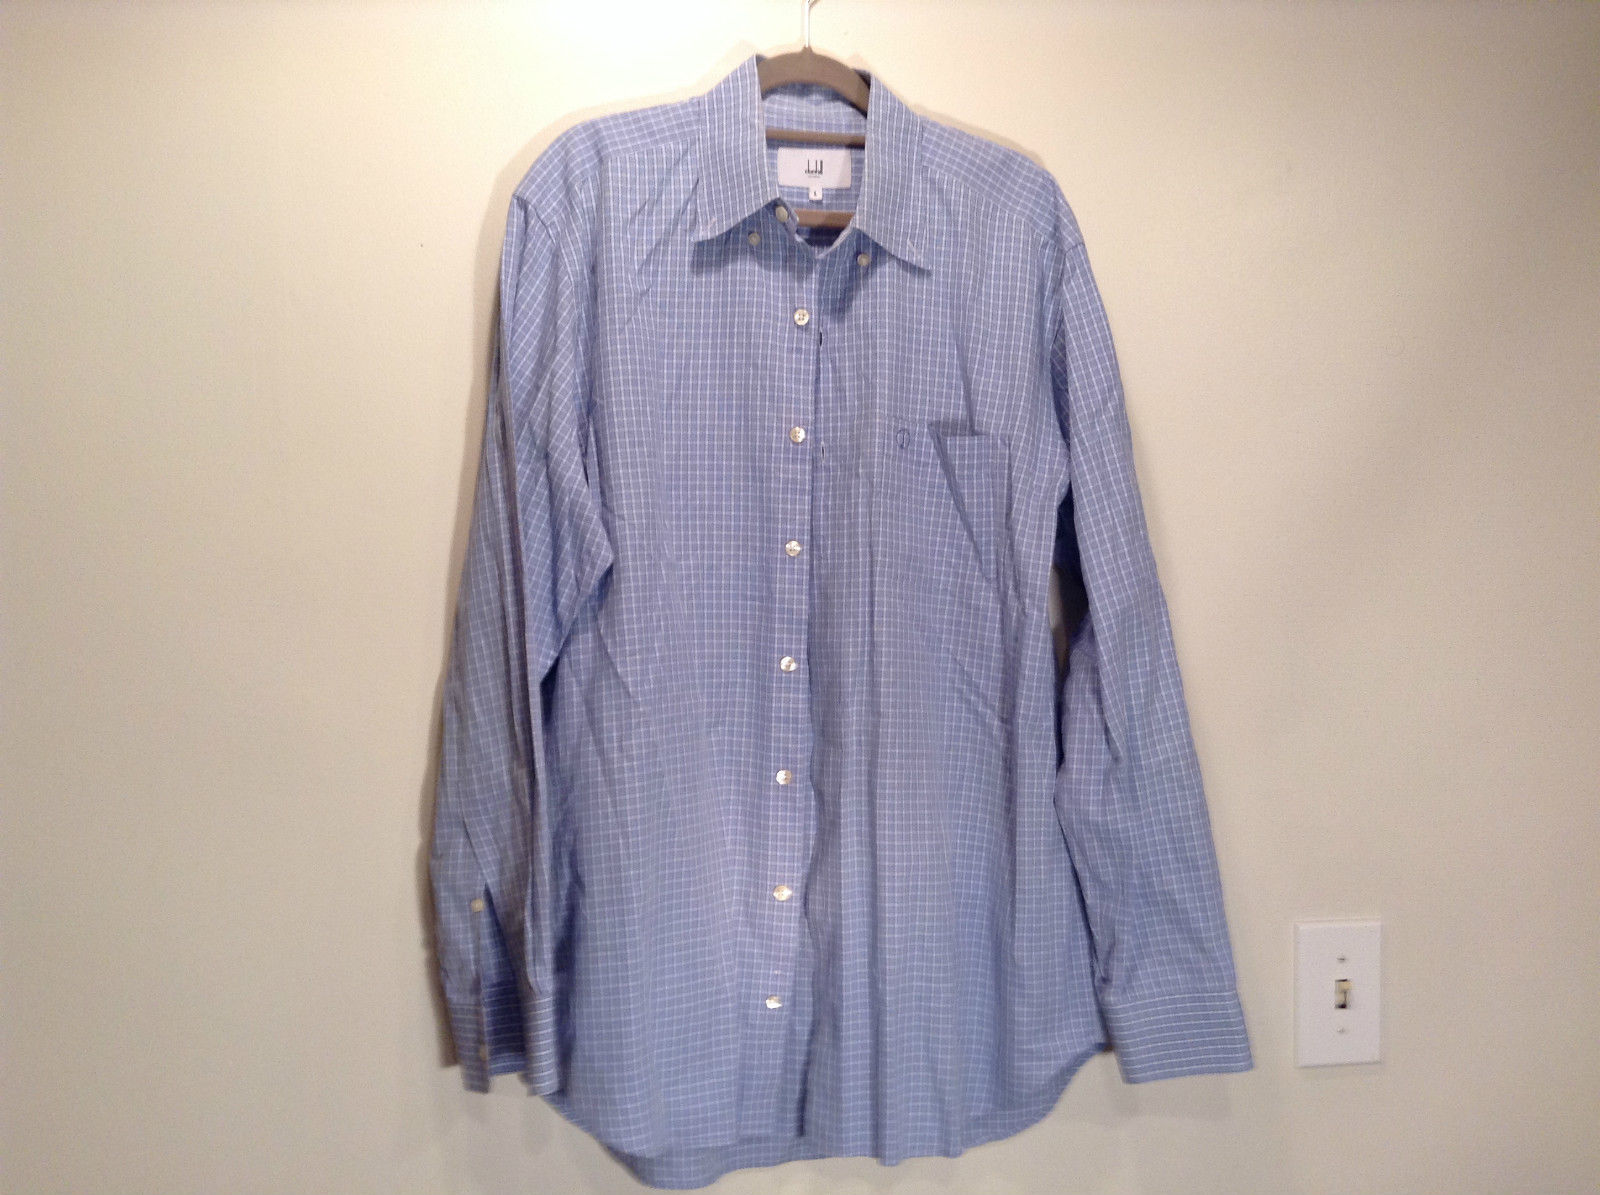 Dunhill Size L Long Sleeve Dress Shirt 100 Percent Cotton Light Blue Pattern